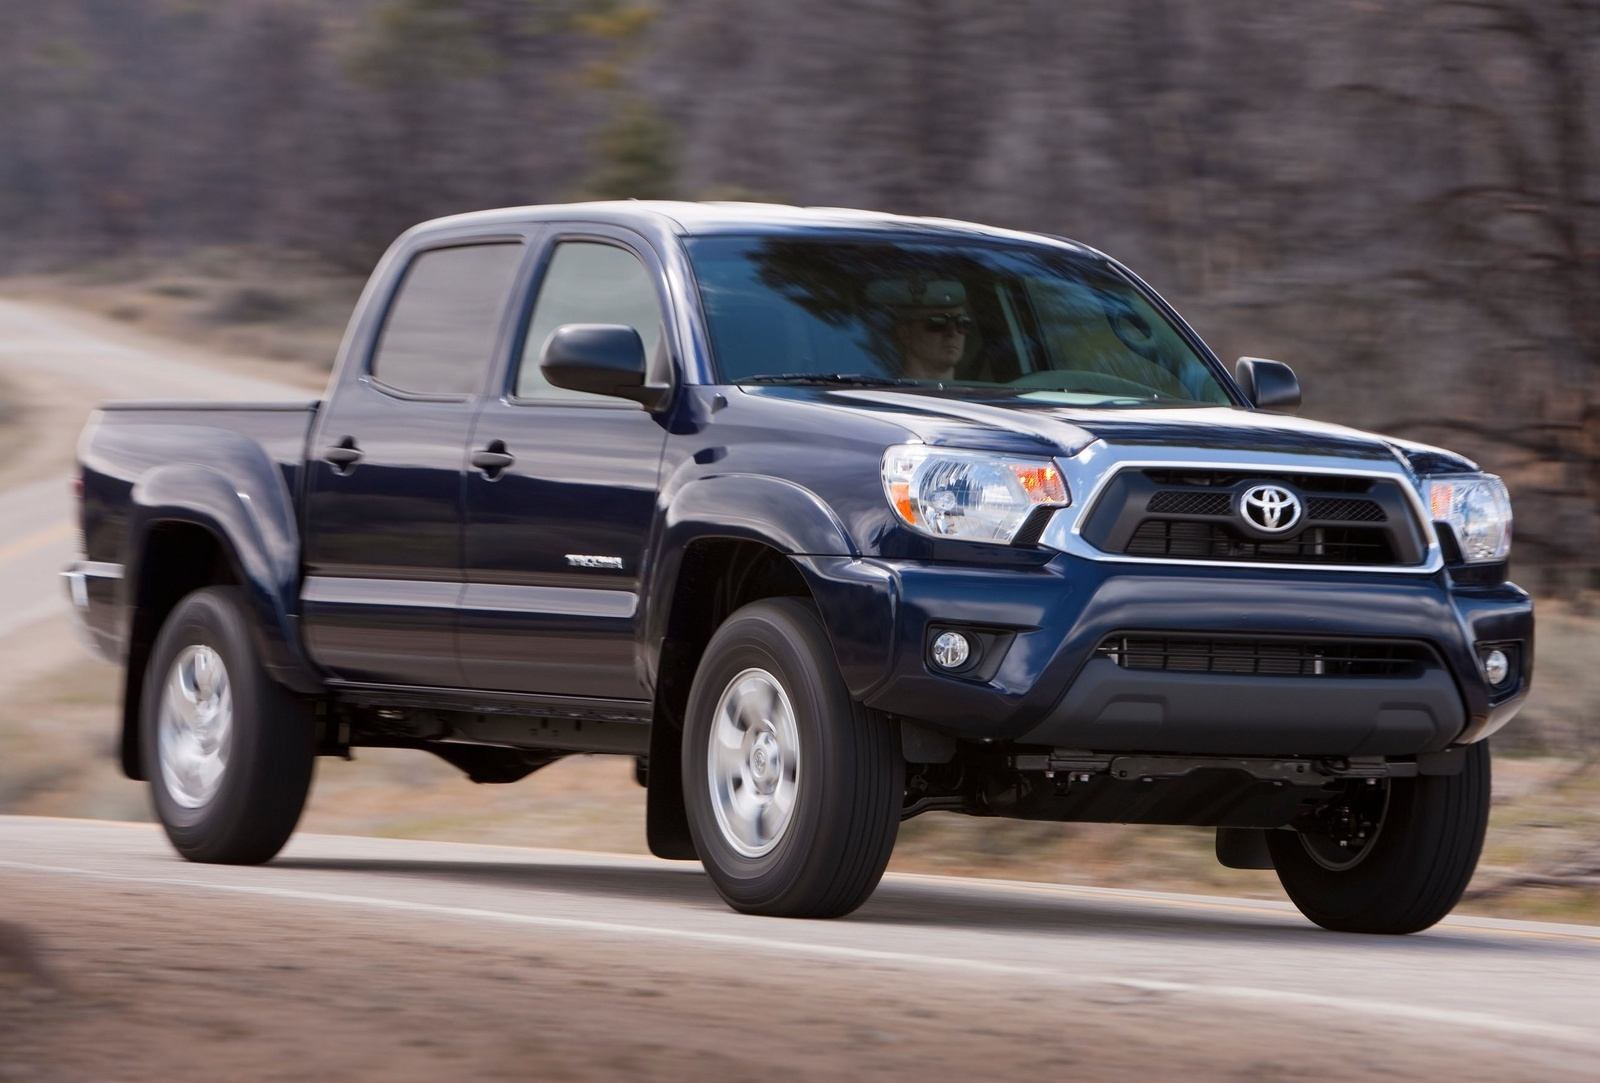 2014 tacoma repair manual